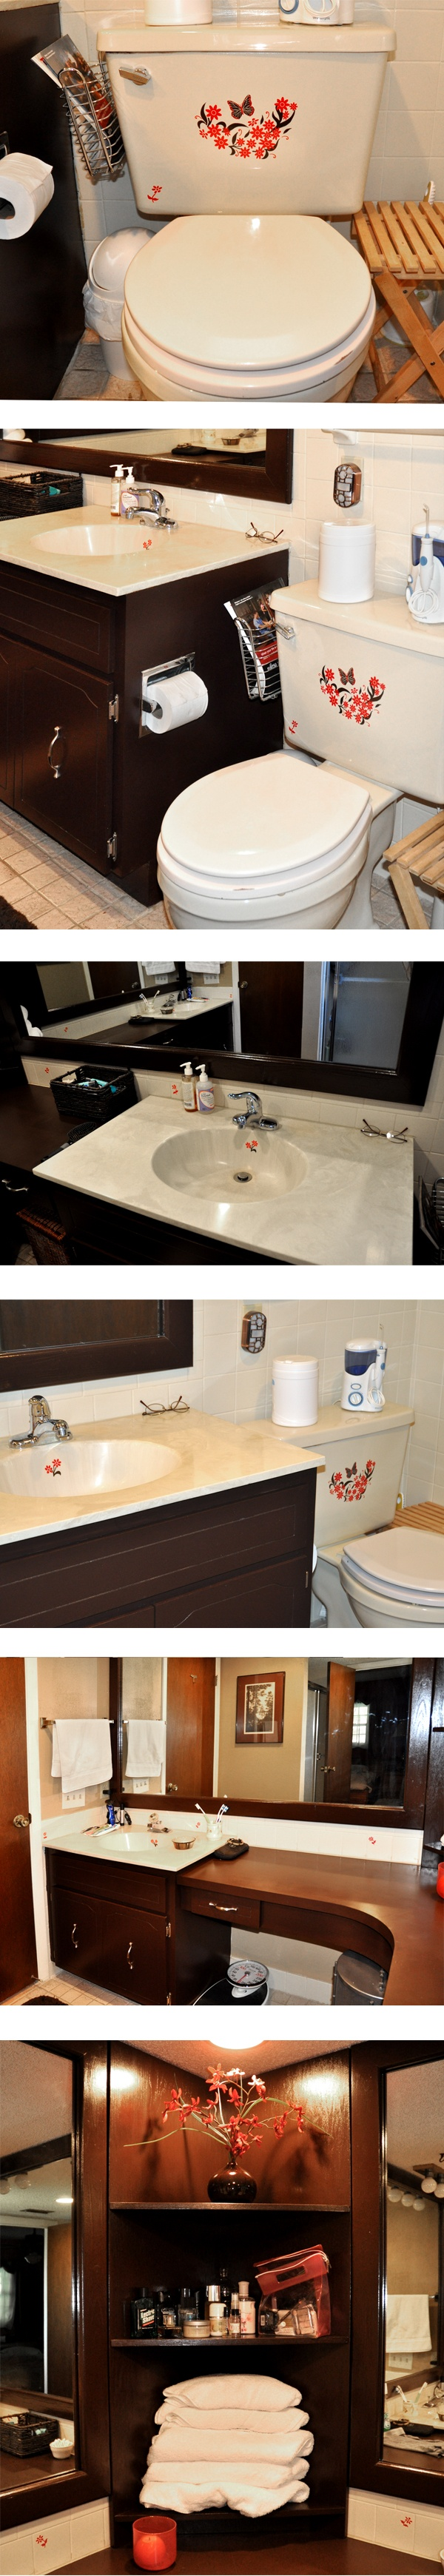 We used Sinkadoodles decals to add some red accent coloring to our brown bathroom with some Red and Brown Daisy designs.